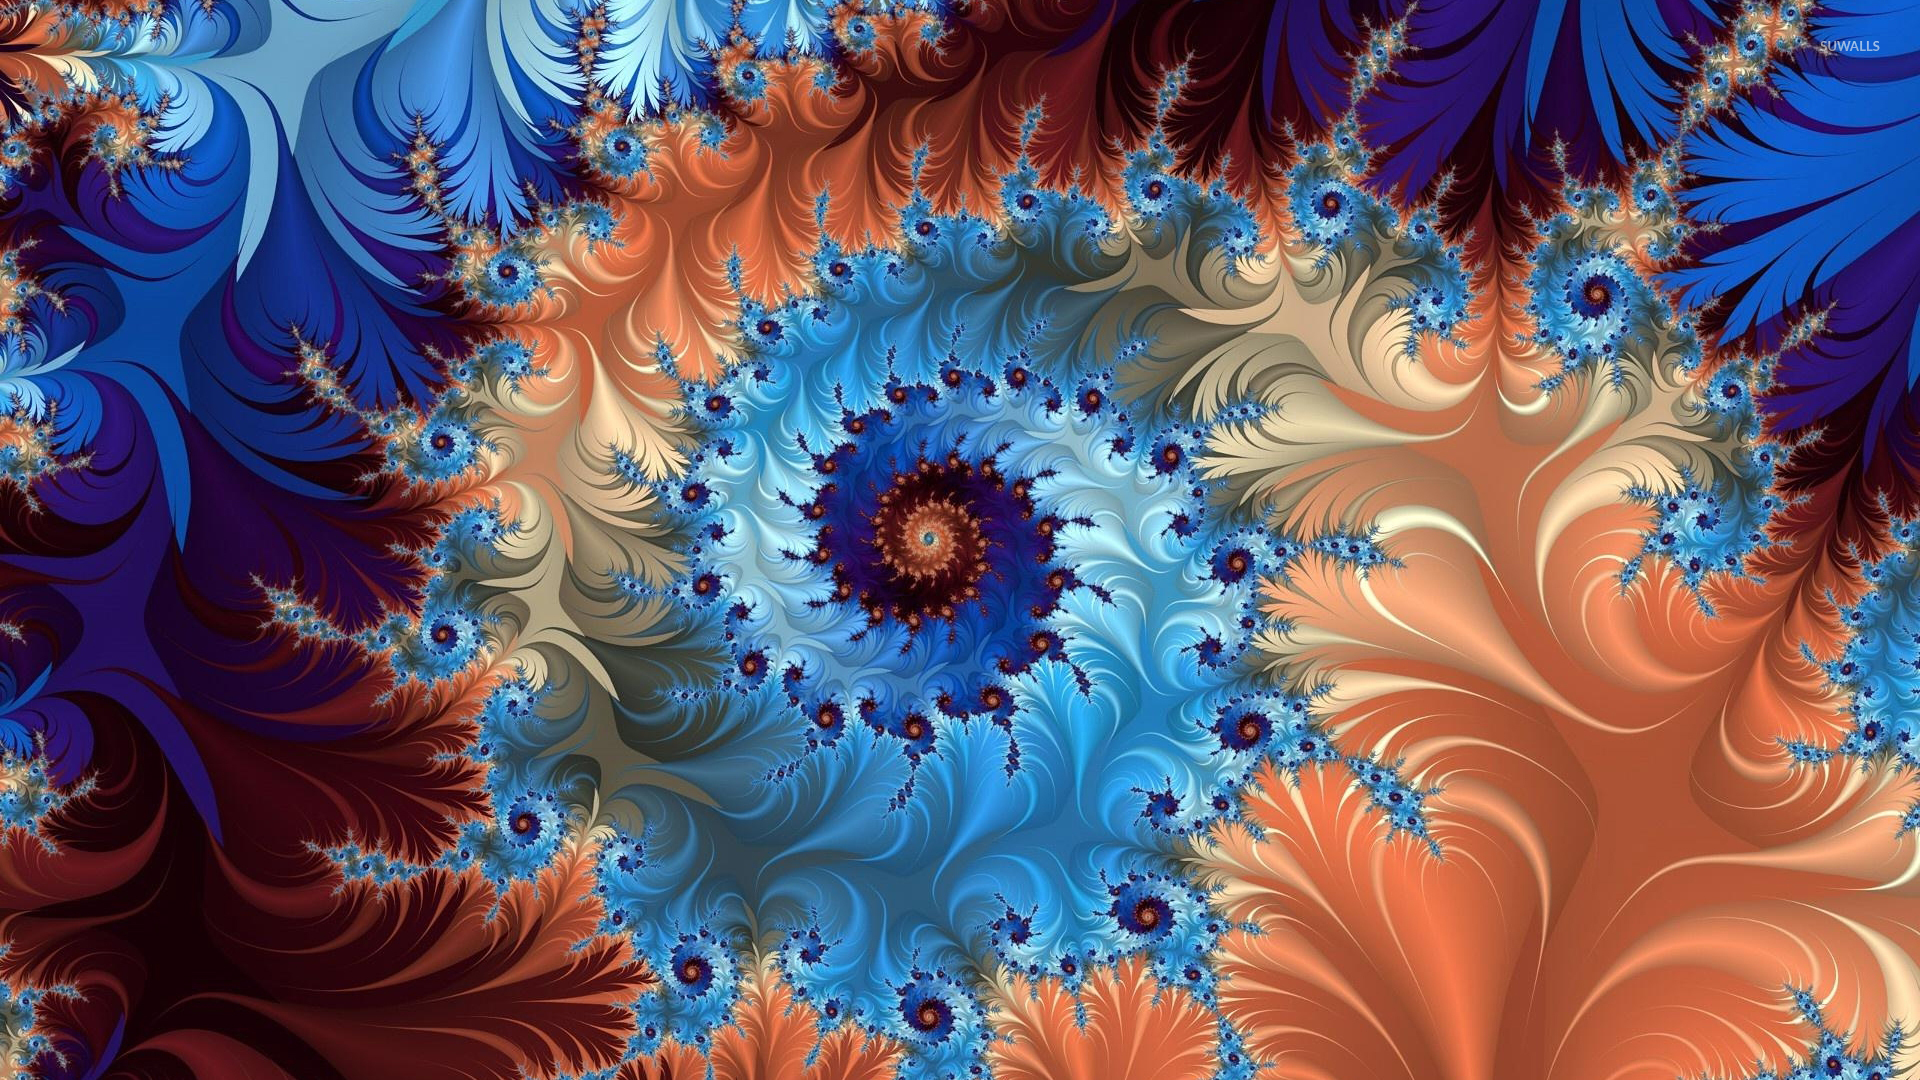 abstract piercing wallpaper - photo #14